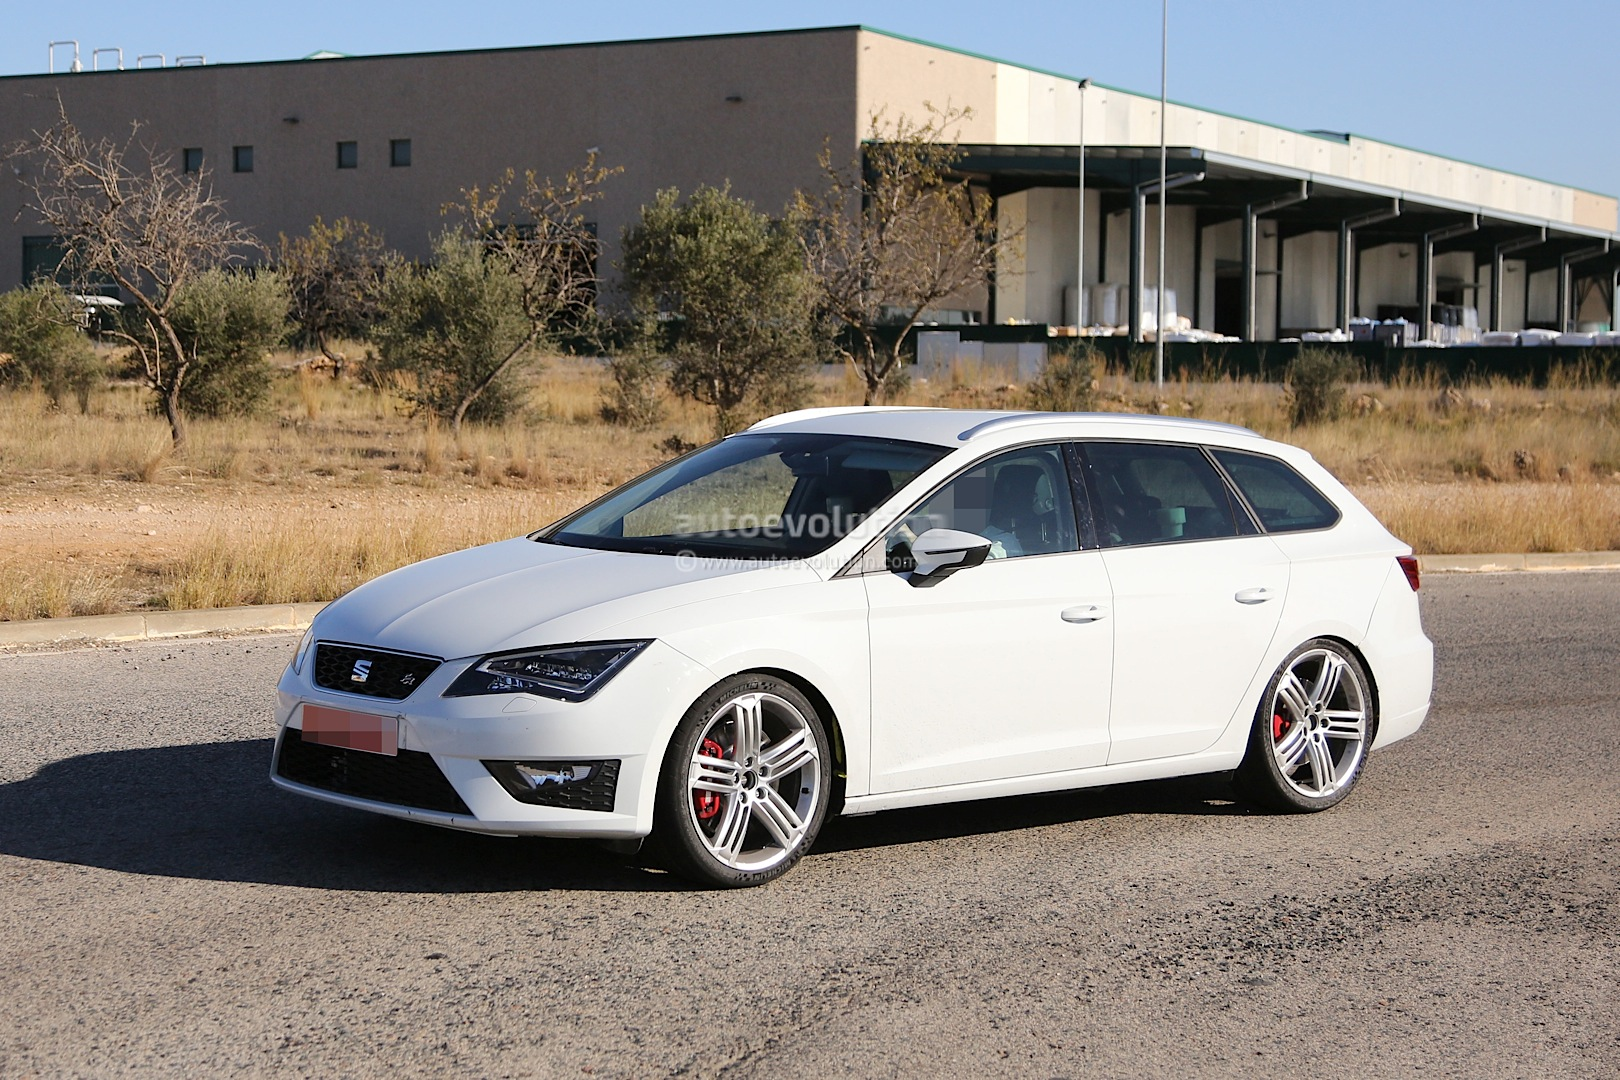 spyshots seat leon st cupra autoevolution. Black Bedroom Furniture Sets. Home Design Ideas